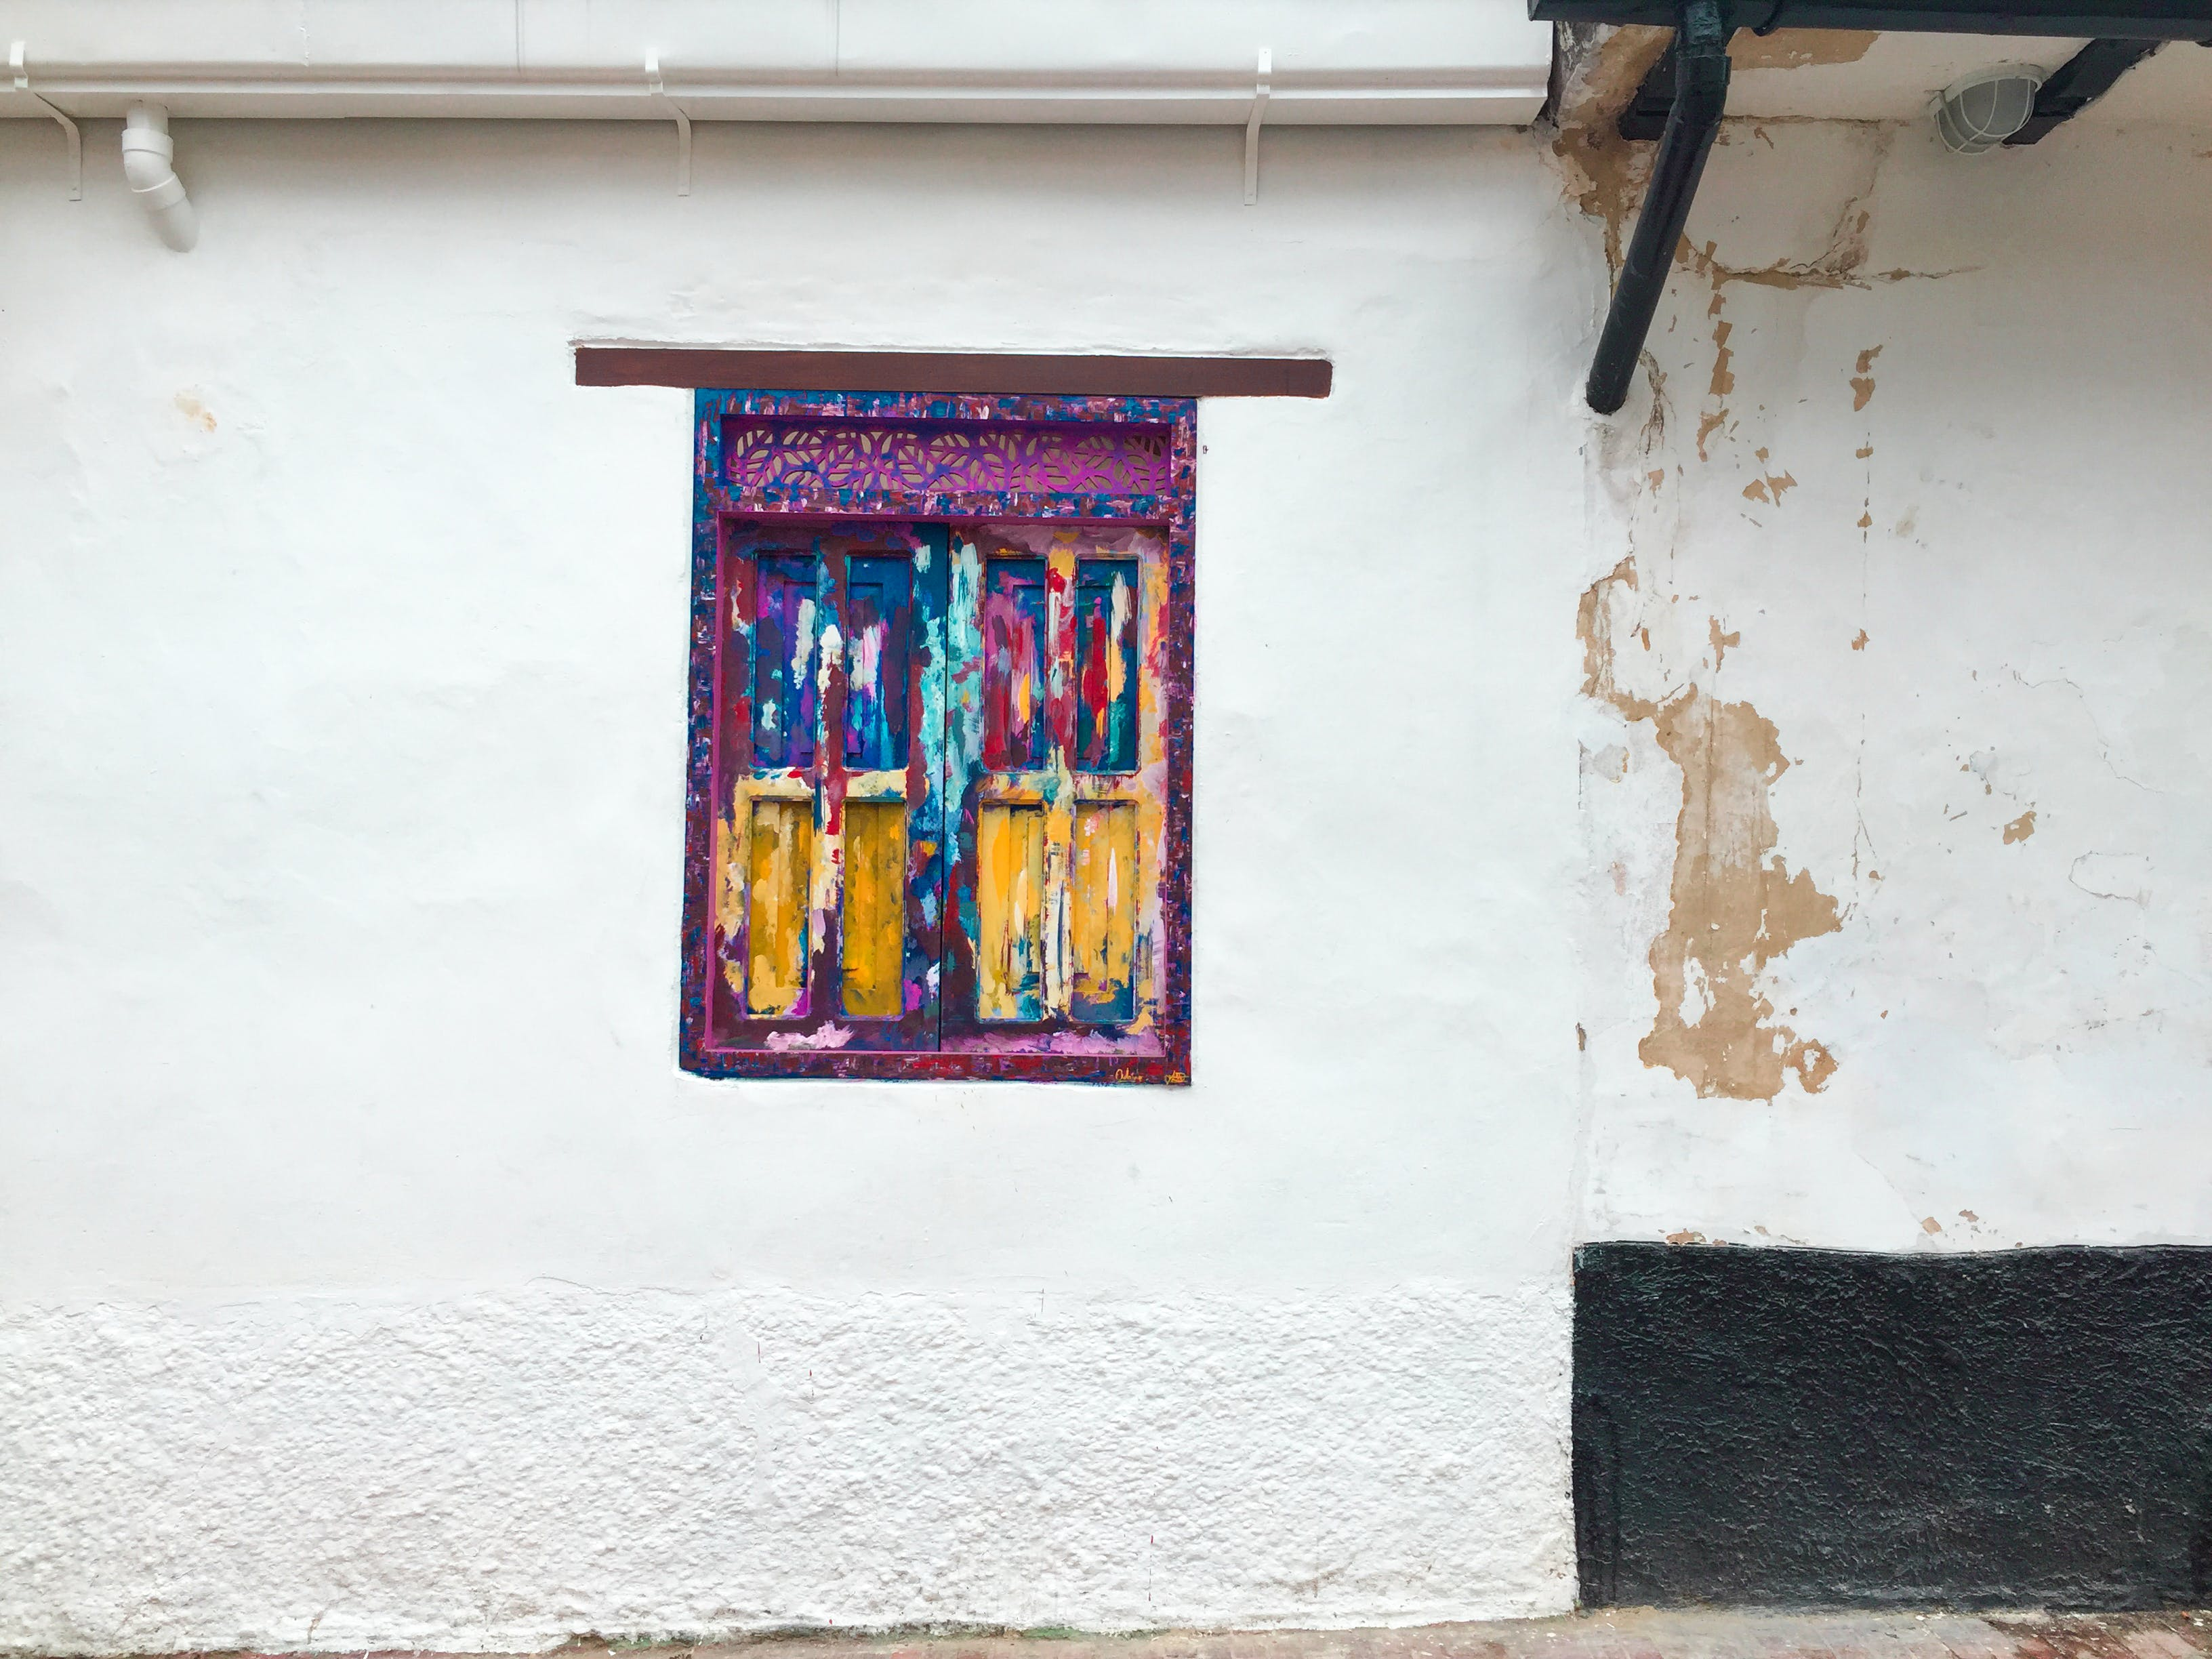 Closed Multicolored Wooden Window